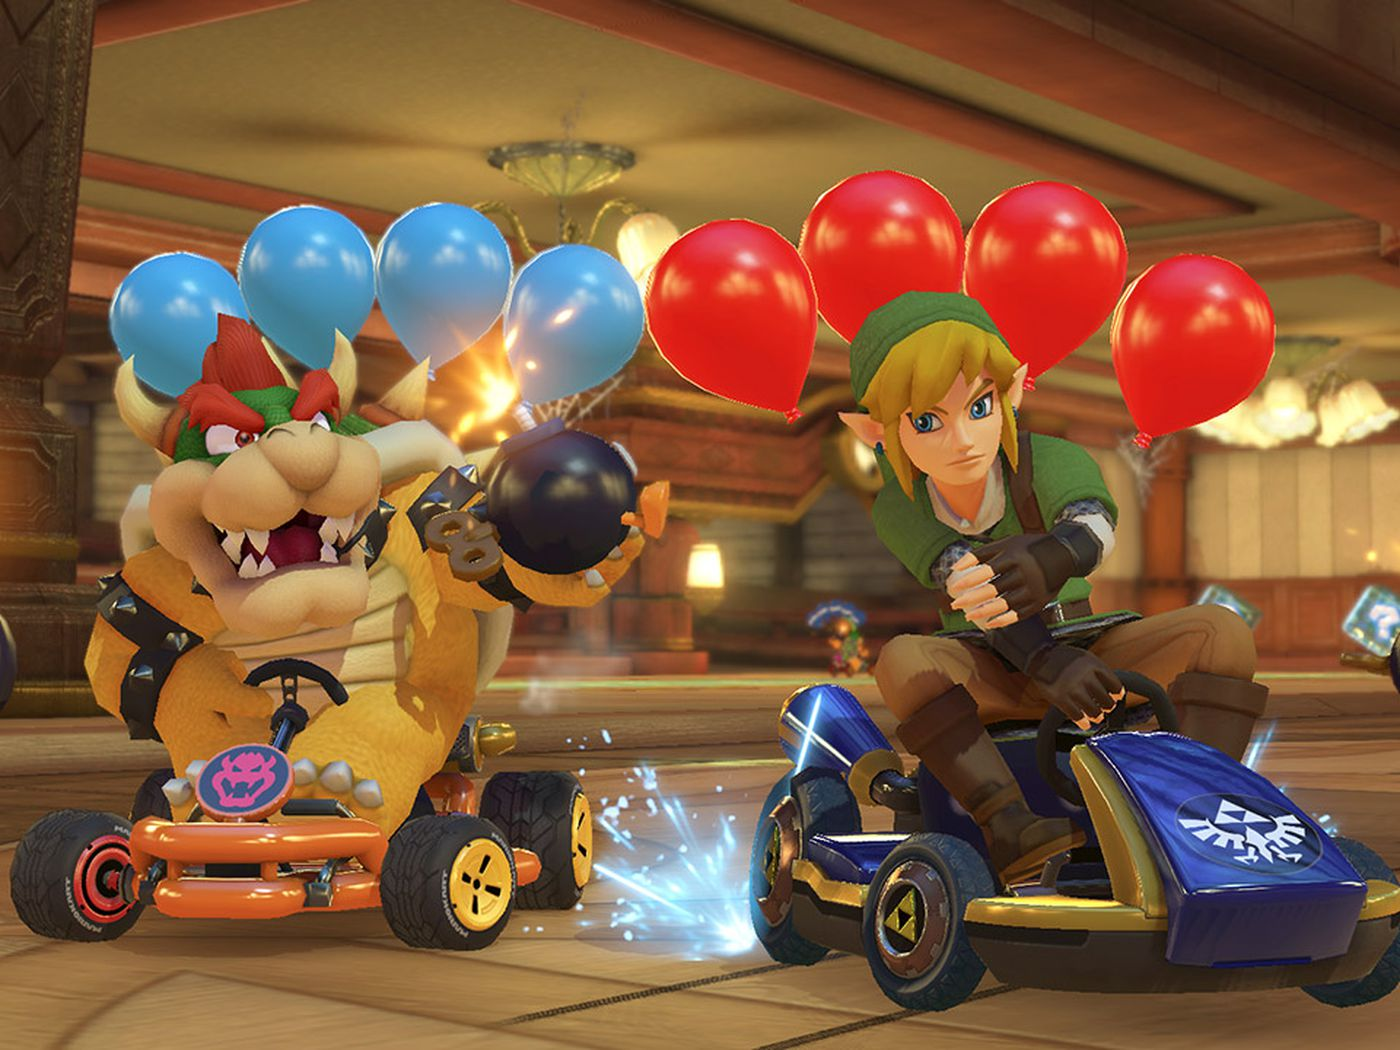 Mario Kart 8 Deluxe Gets It Right By Ditching The